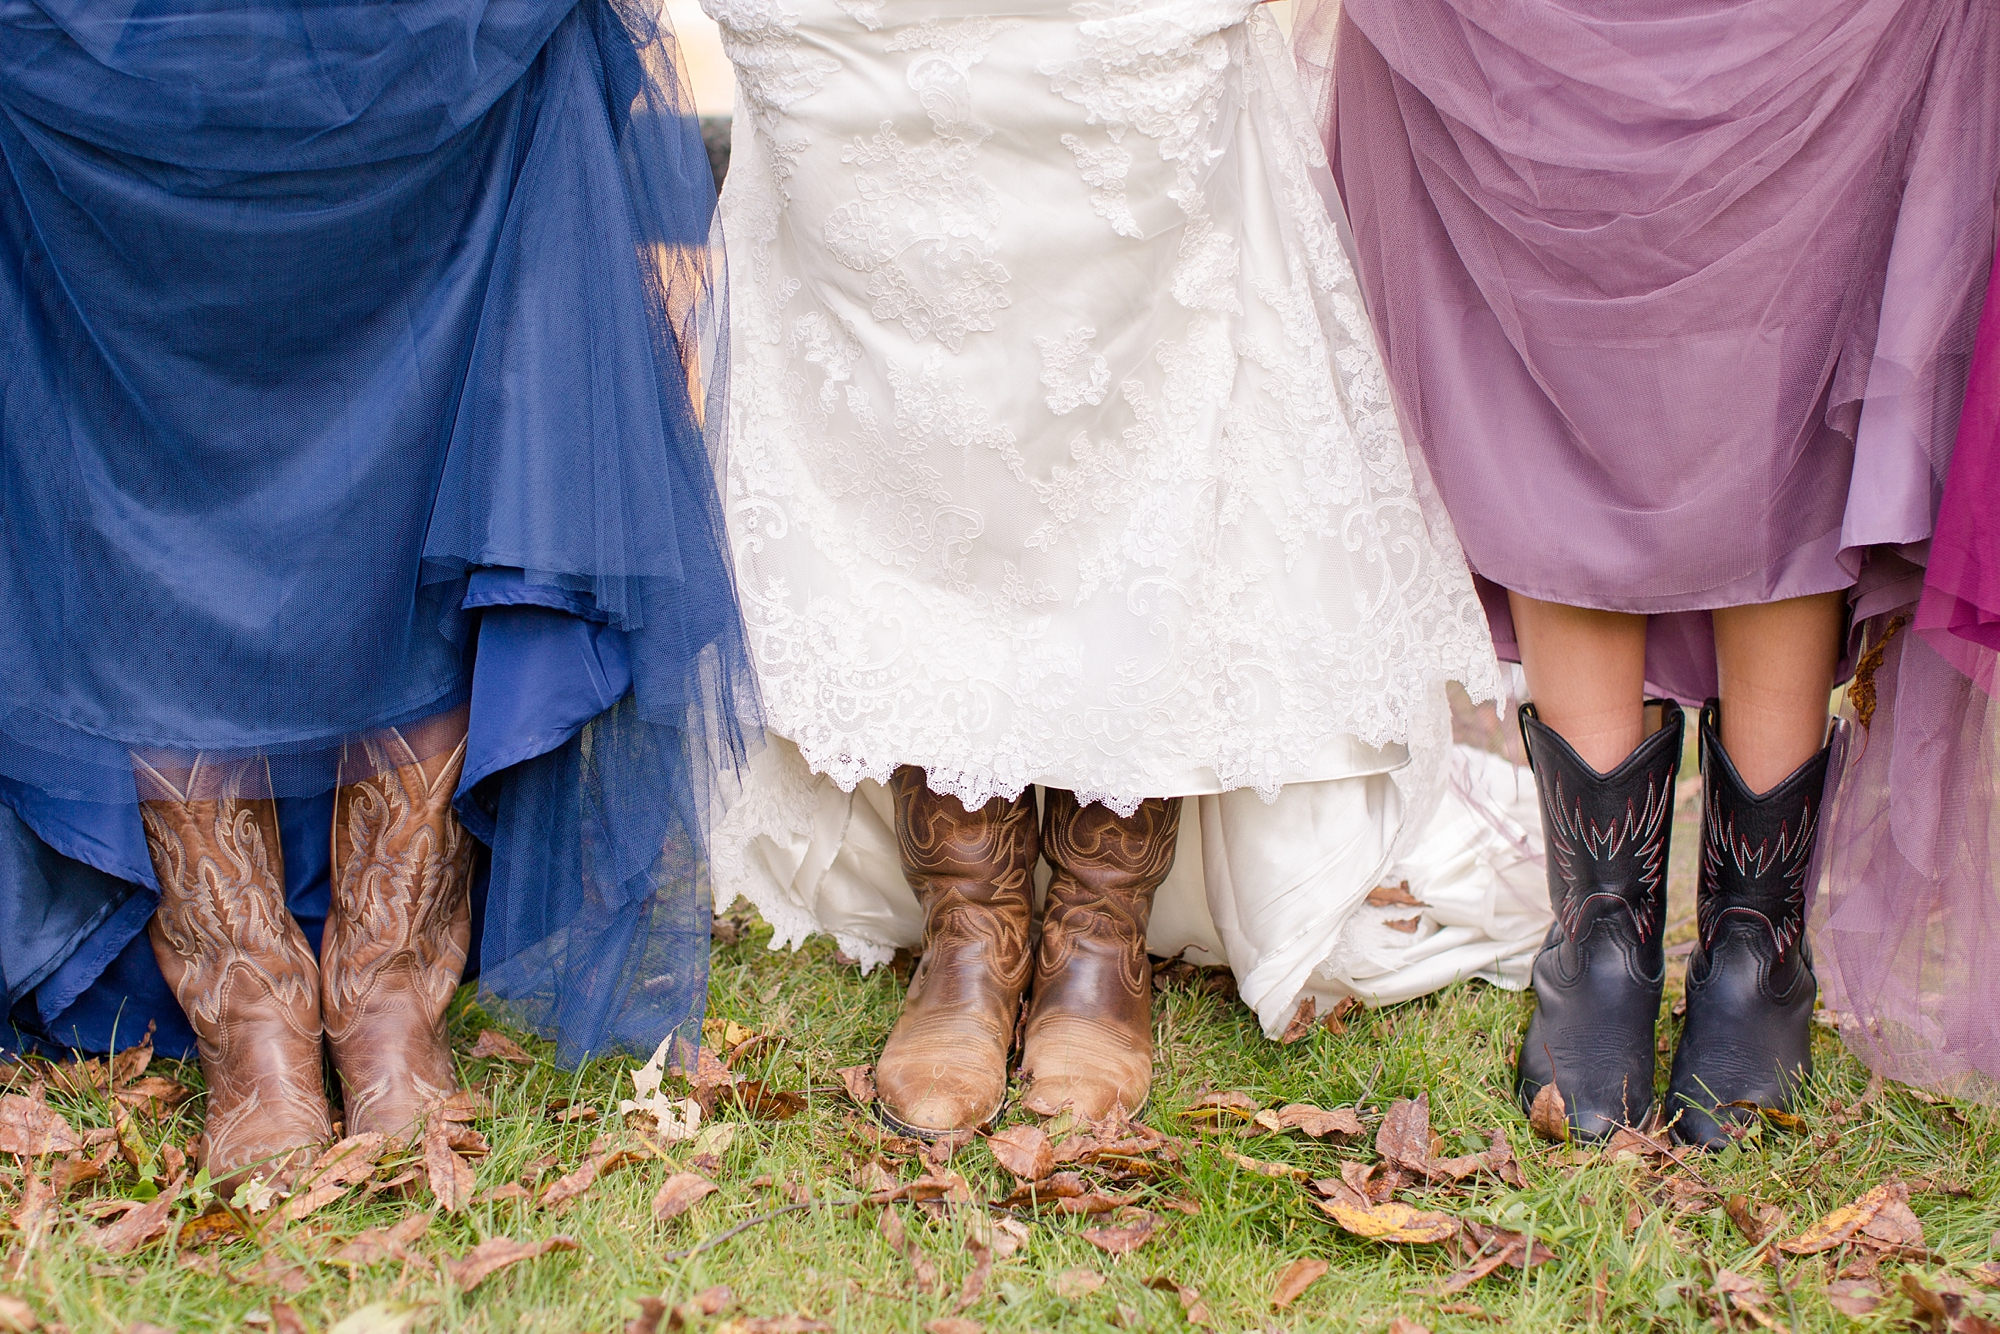 Bird 4. Bridal Party-437_anna grace photography baltimore maryland wedding photographer chanteclaire wedding photo.jpg